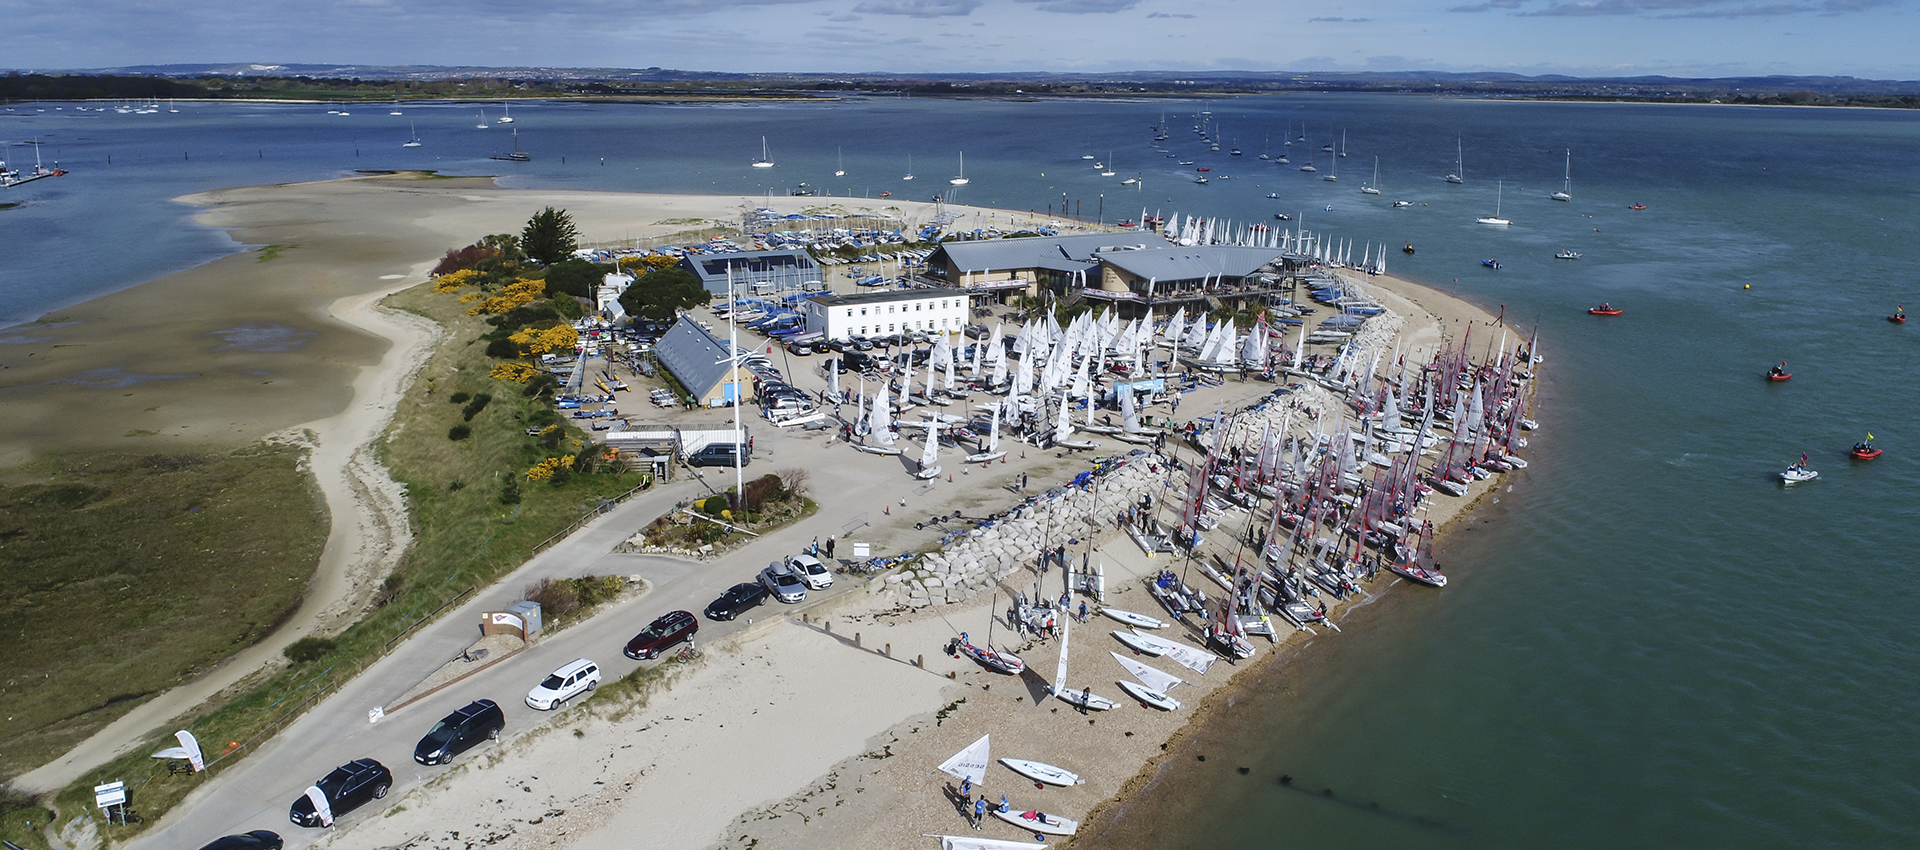 RS Elite National Championship 2020 Royal Yacht Squadron